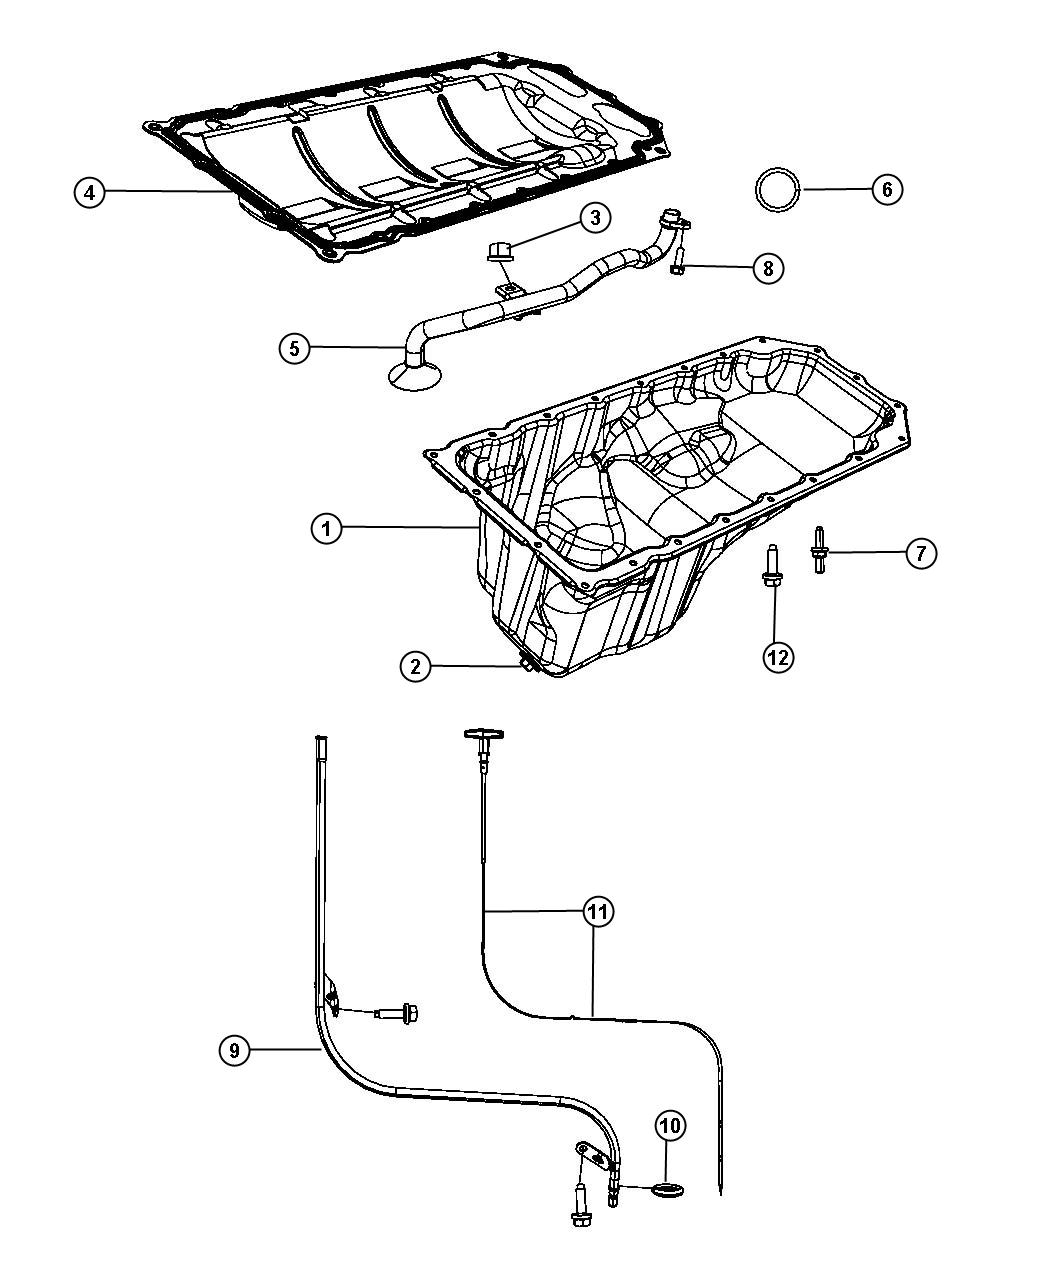 Service manual [Oil Pan Removal 2009 Chrysler Aspen